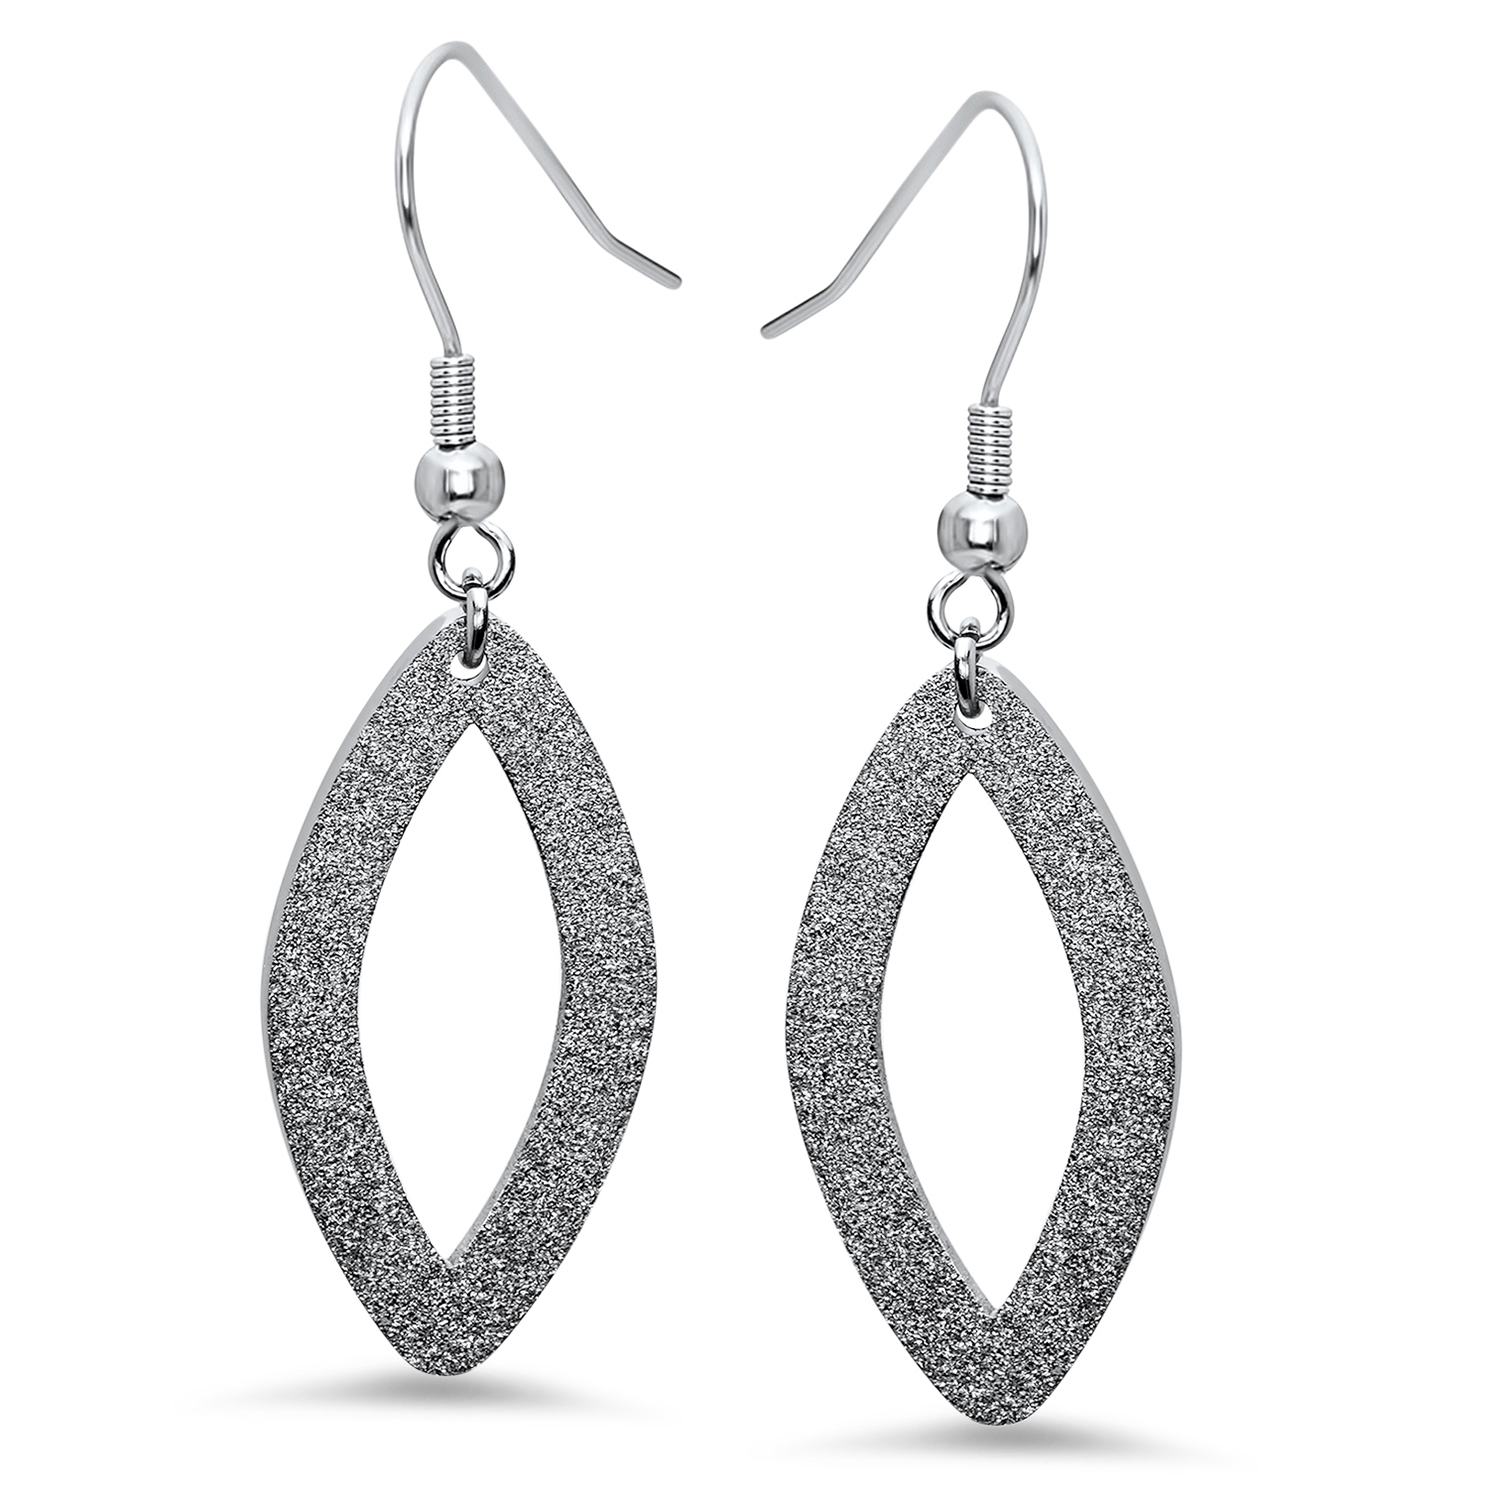 Stainless Steel Laser Cut Oval Dangle Earrings